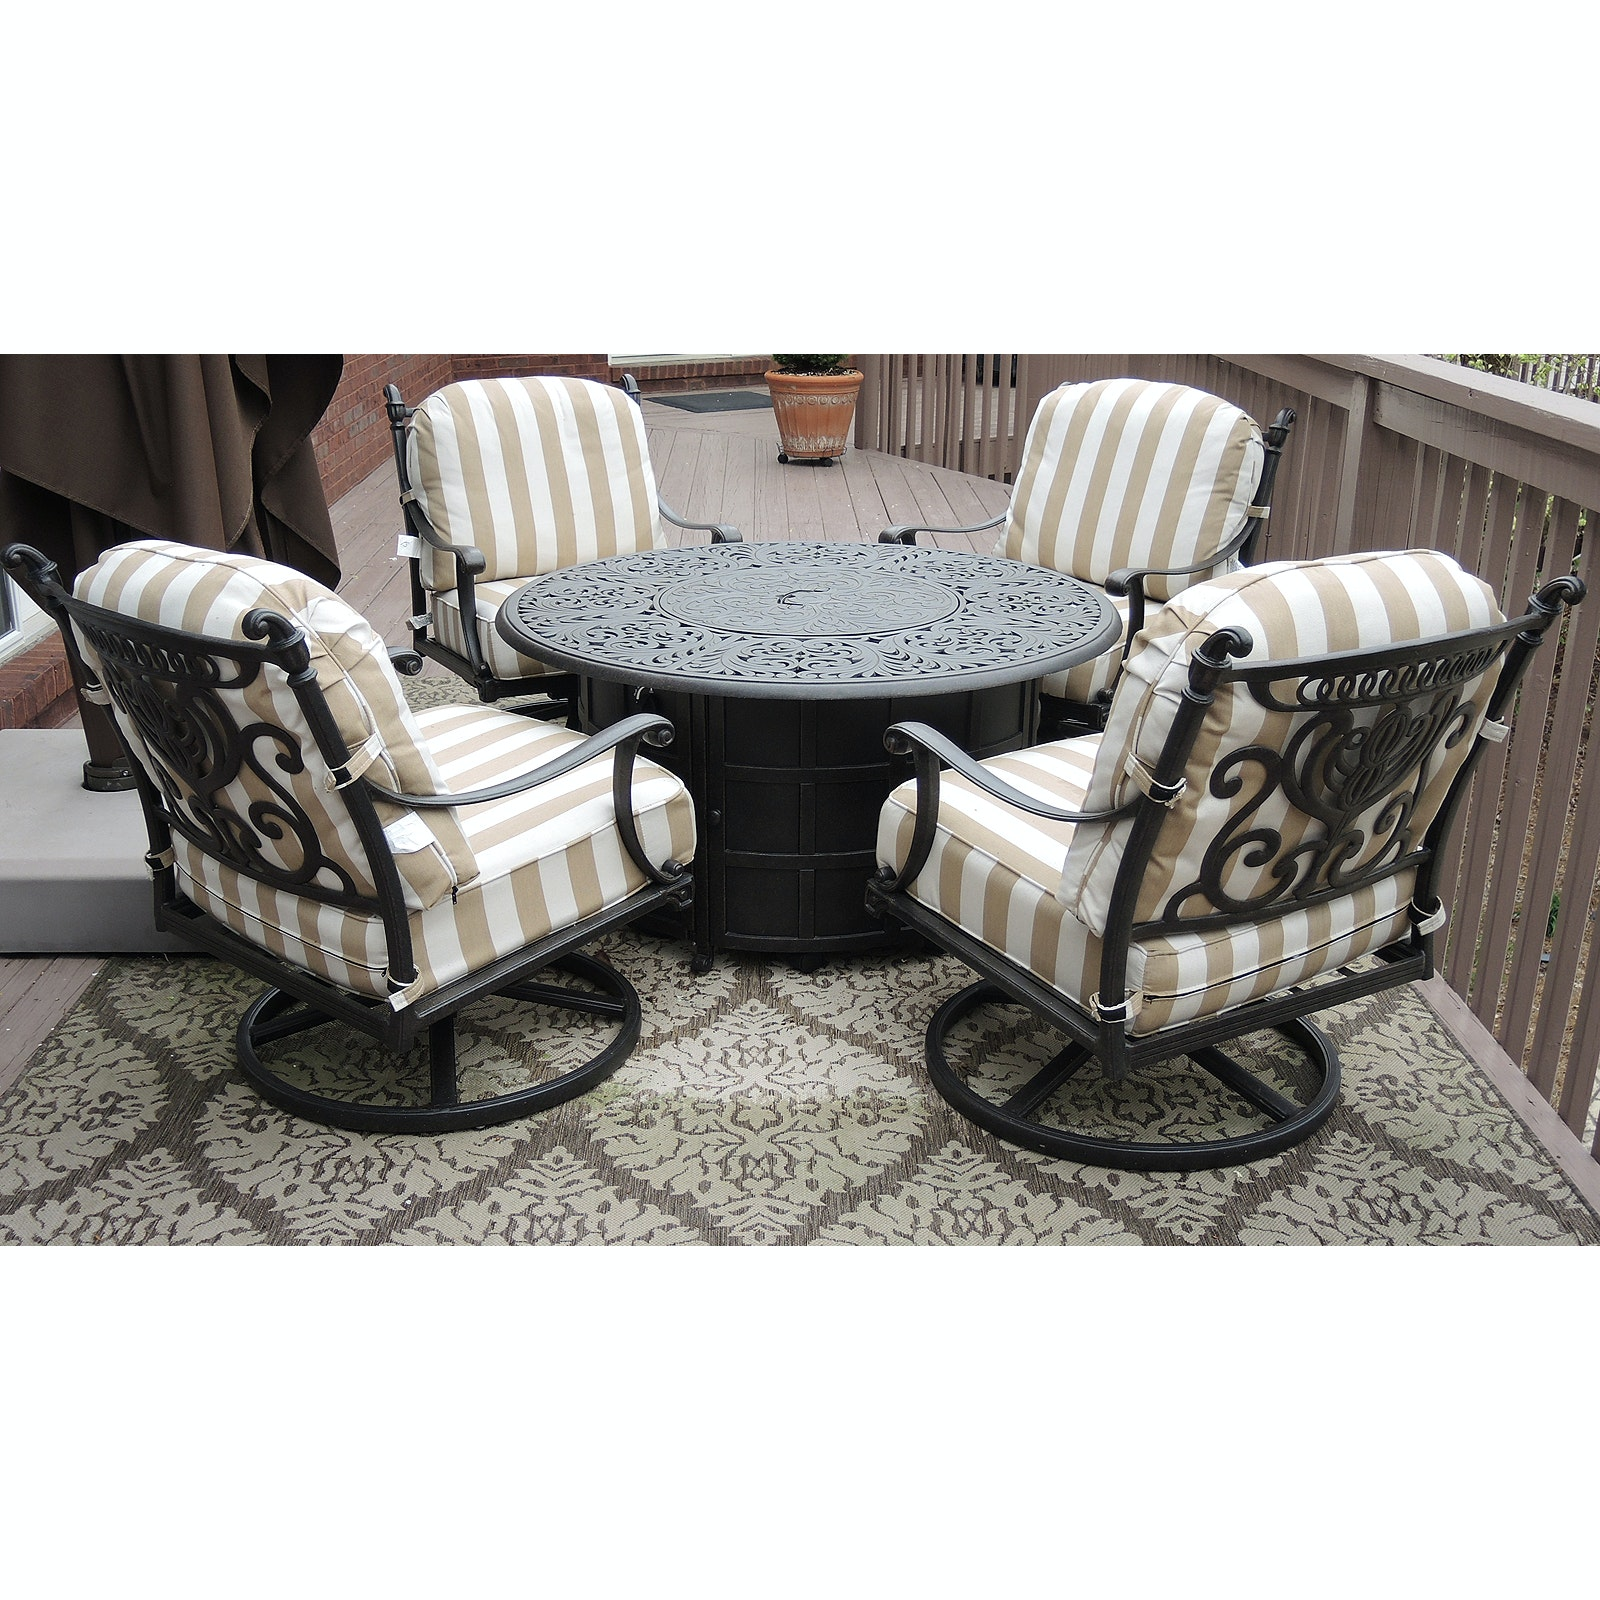 """Hanamint """"Chateau"""" Enclosed Propane Firepit and Swivel Rocker Chairs with Cover"""